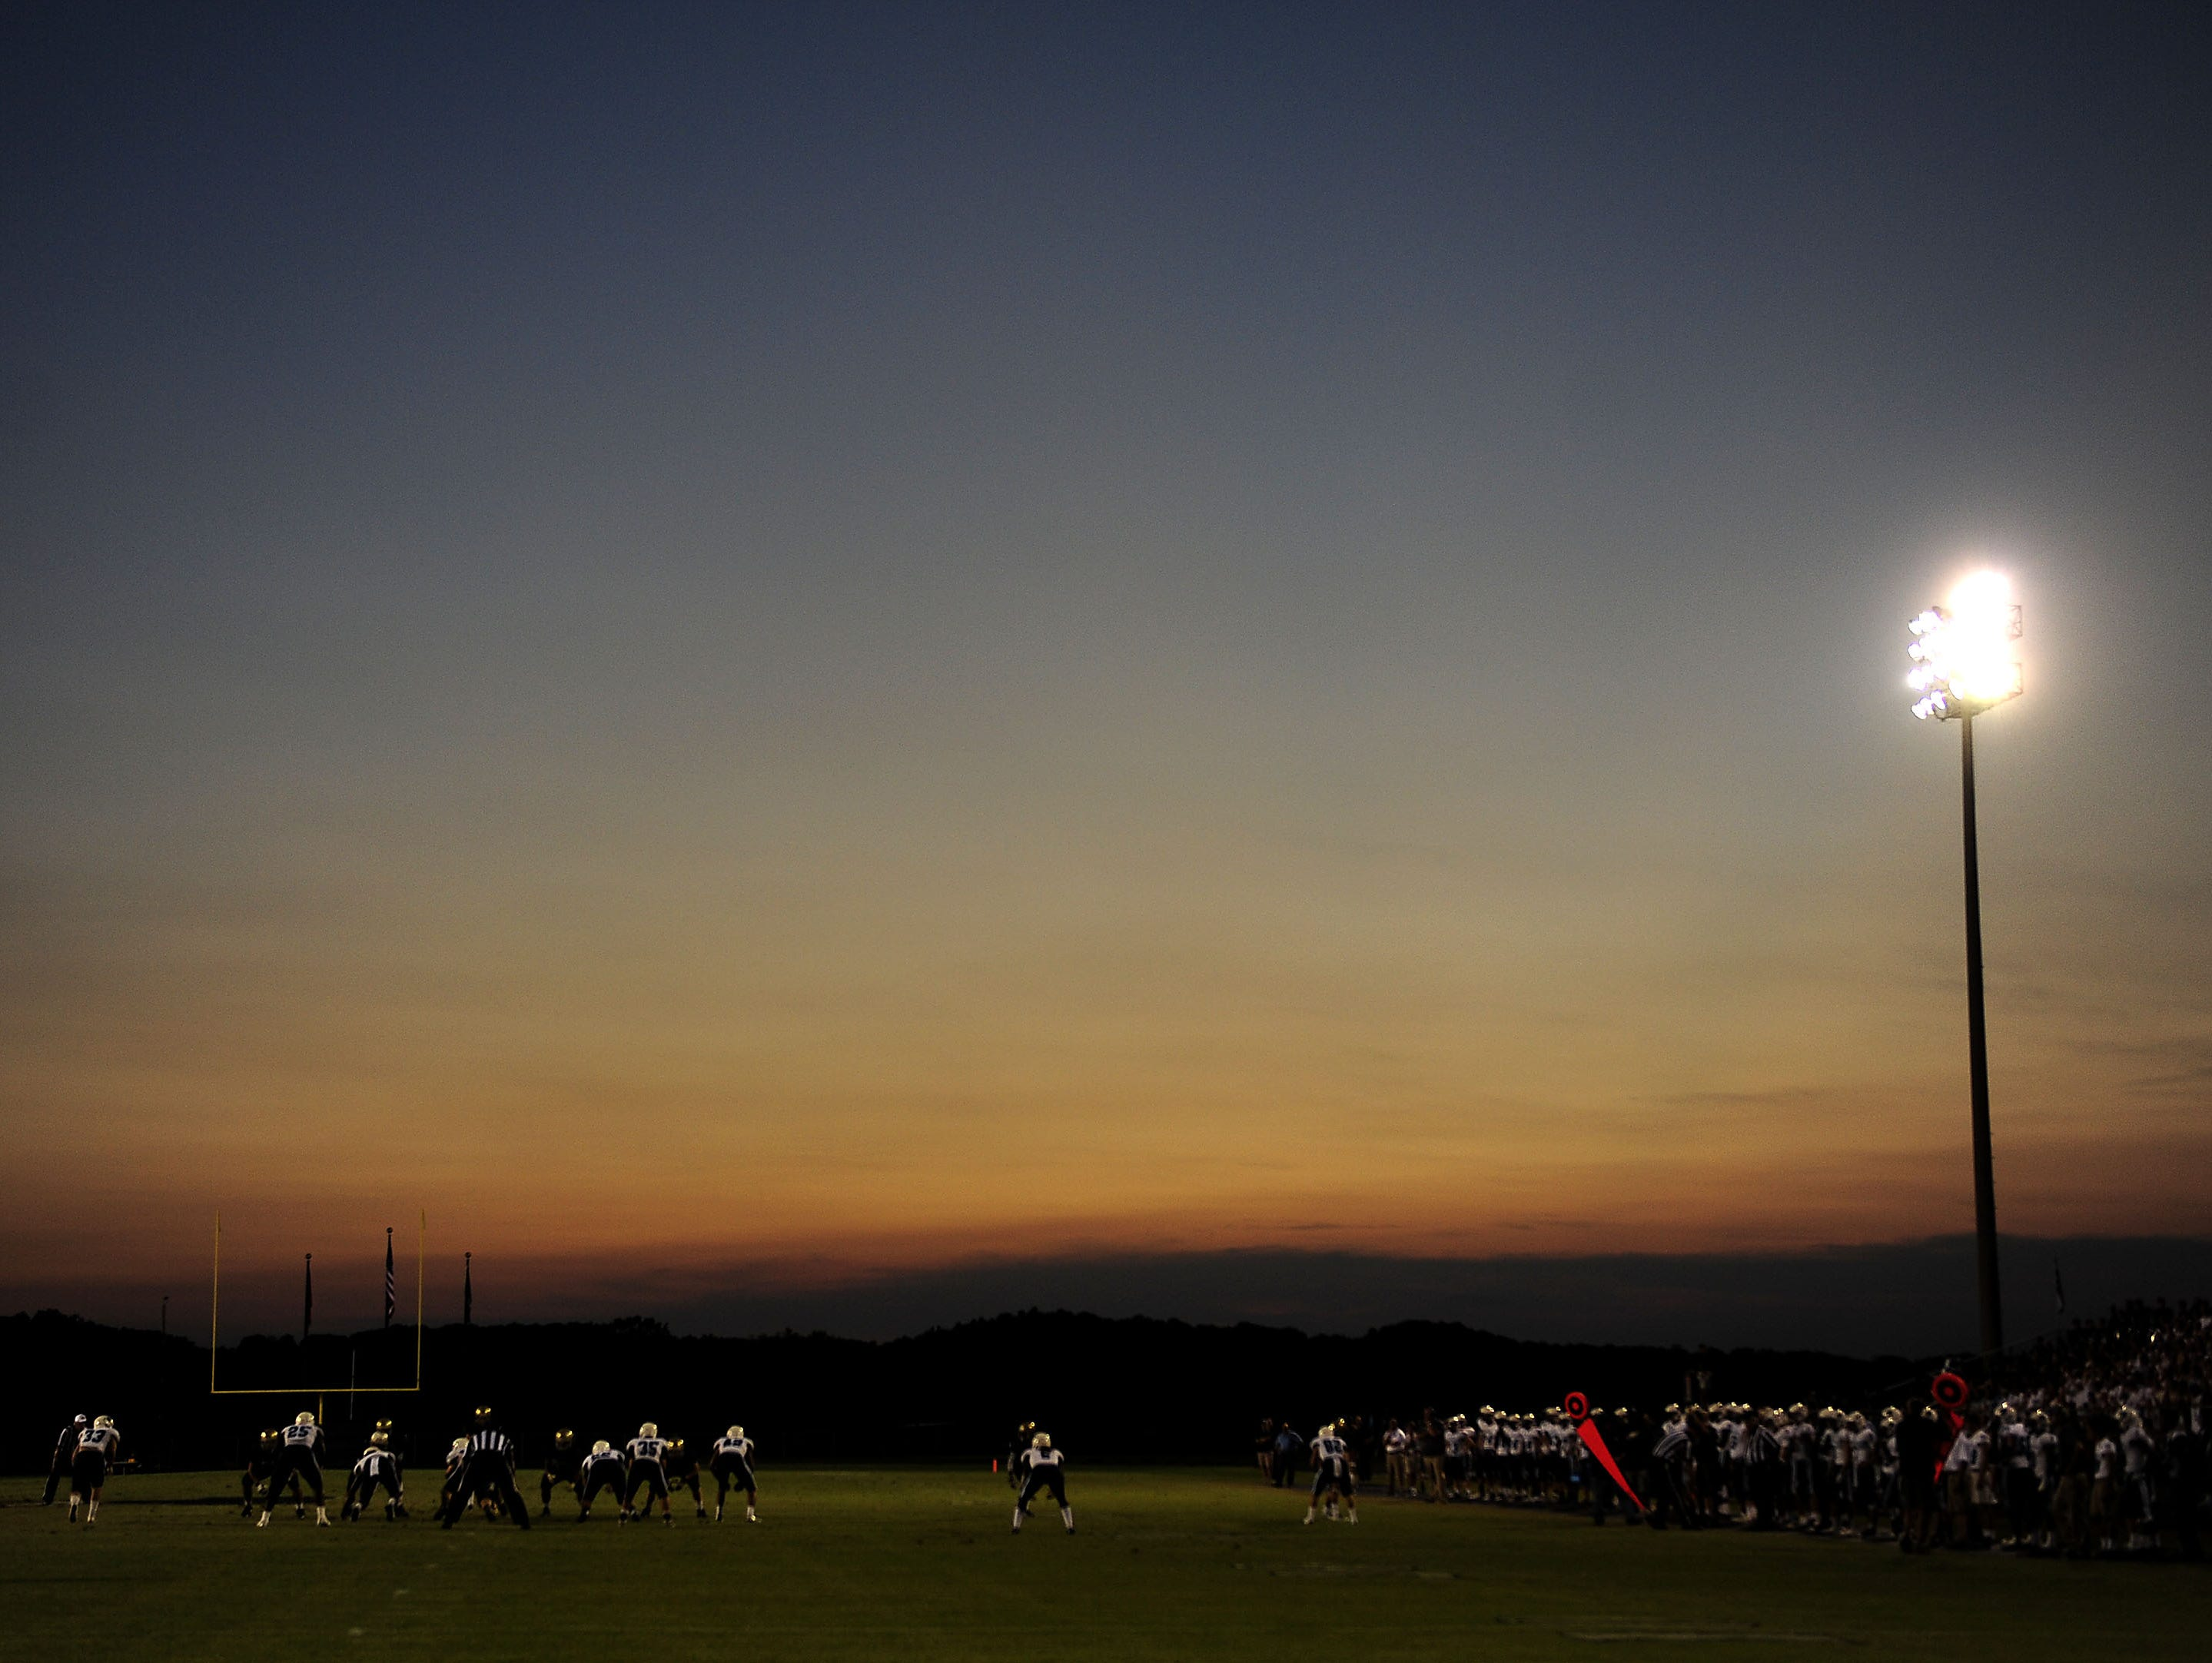 The sun sets in the background during the Centennial and Independence game at Independence High School in Thompson's Station, Tenn., Friday, Aug. 28, 2015.